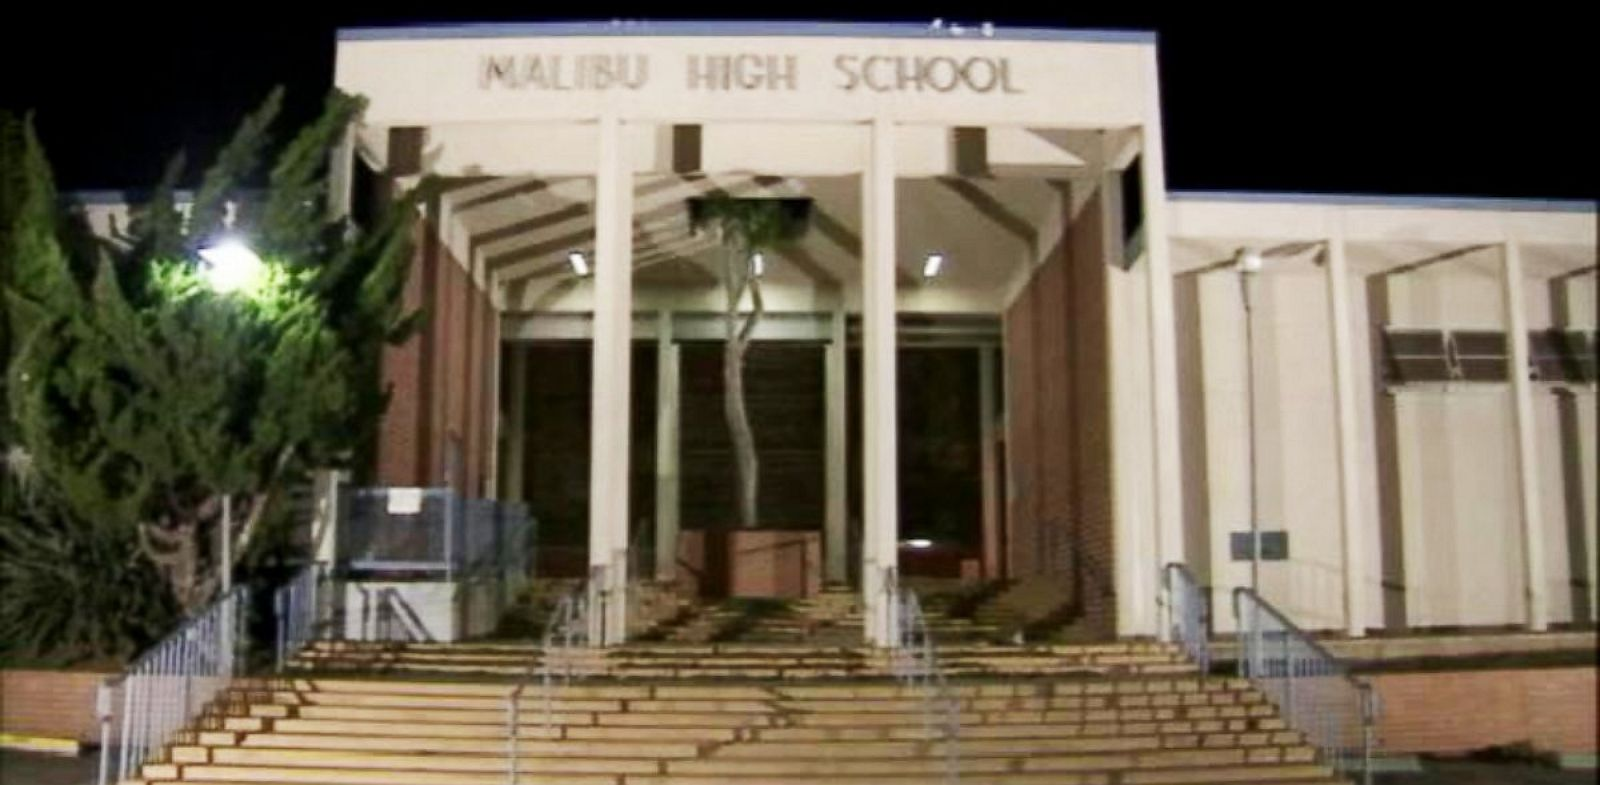 PHOTO: Malibu High School